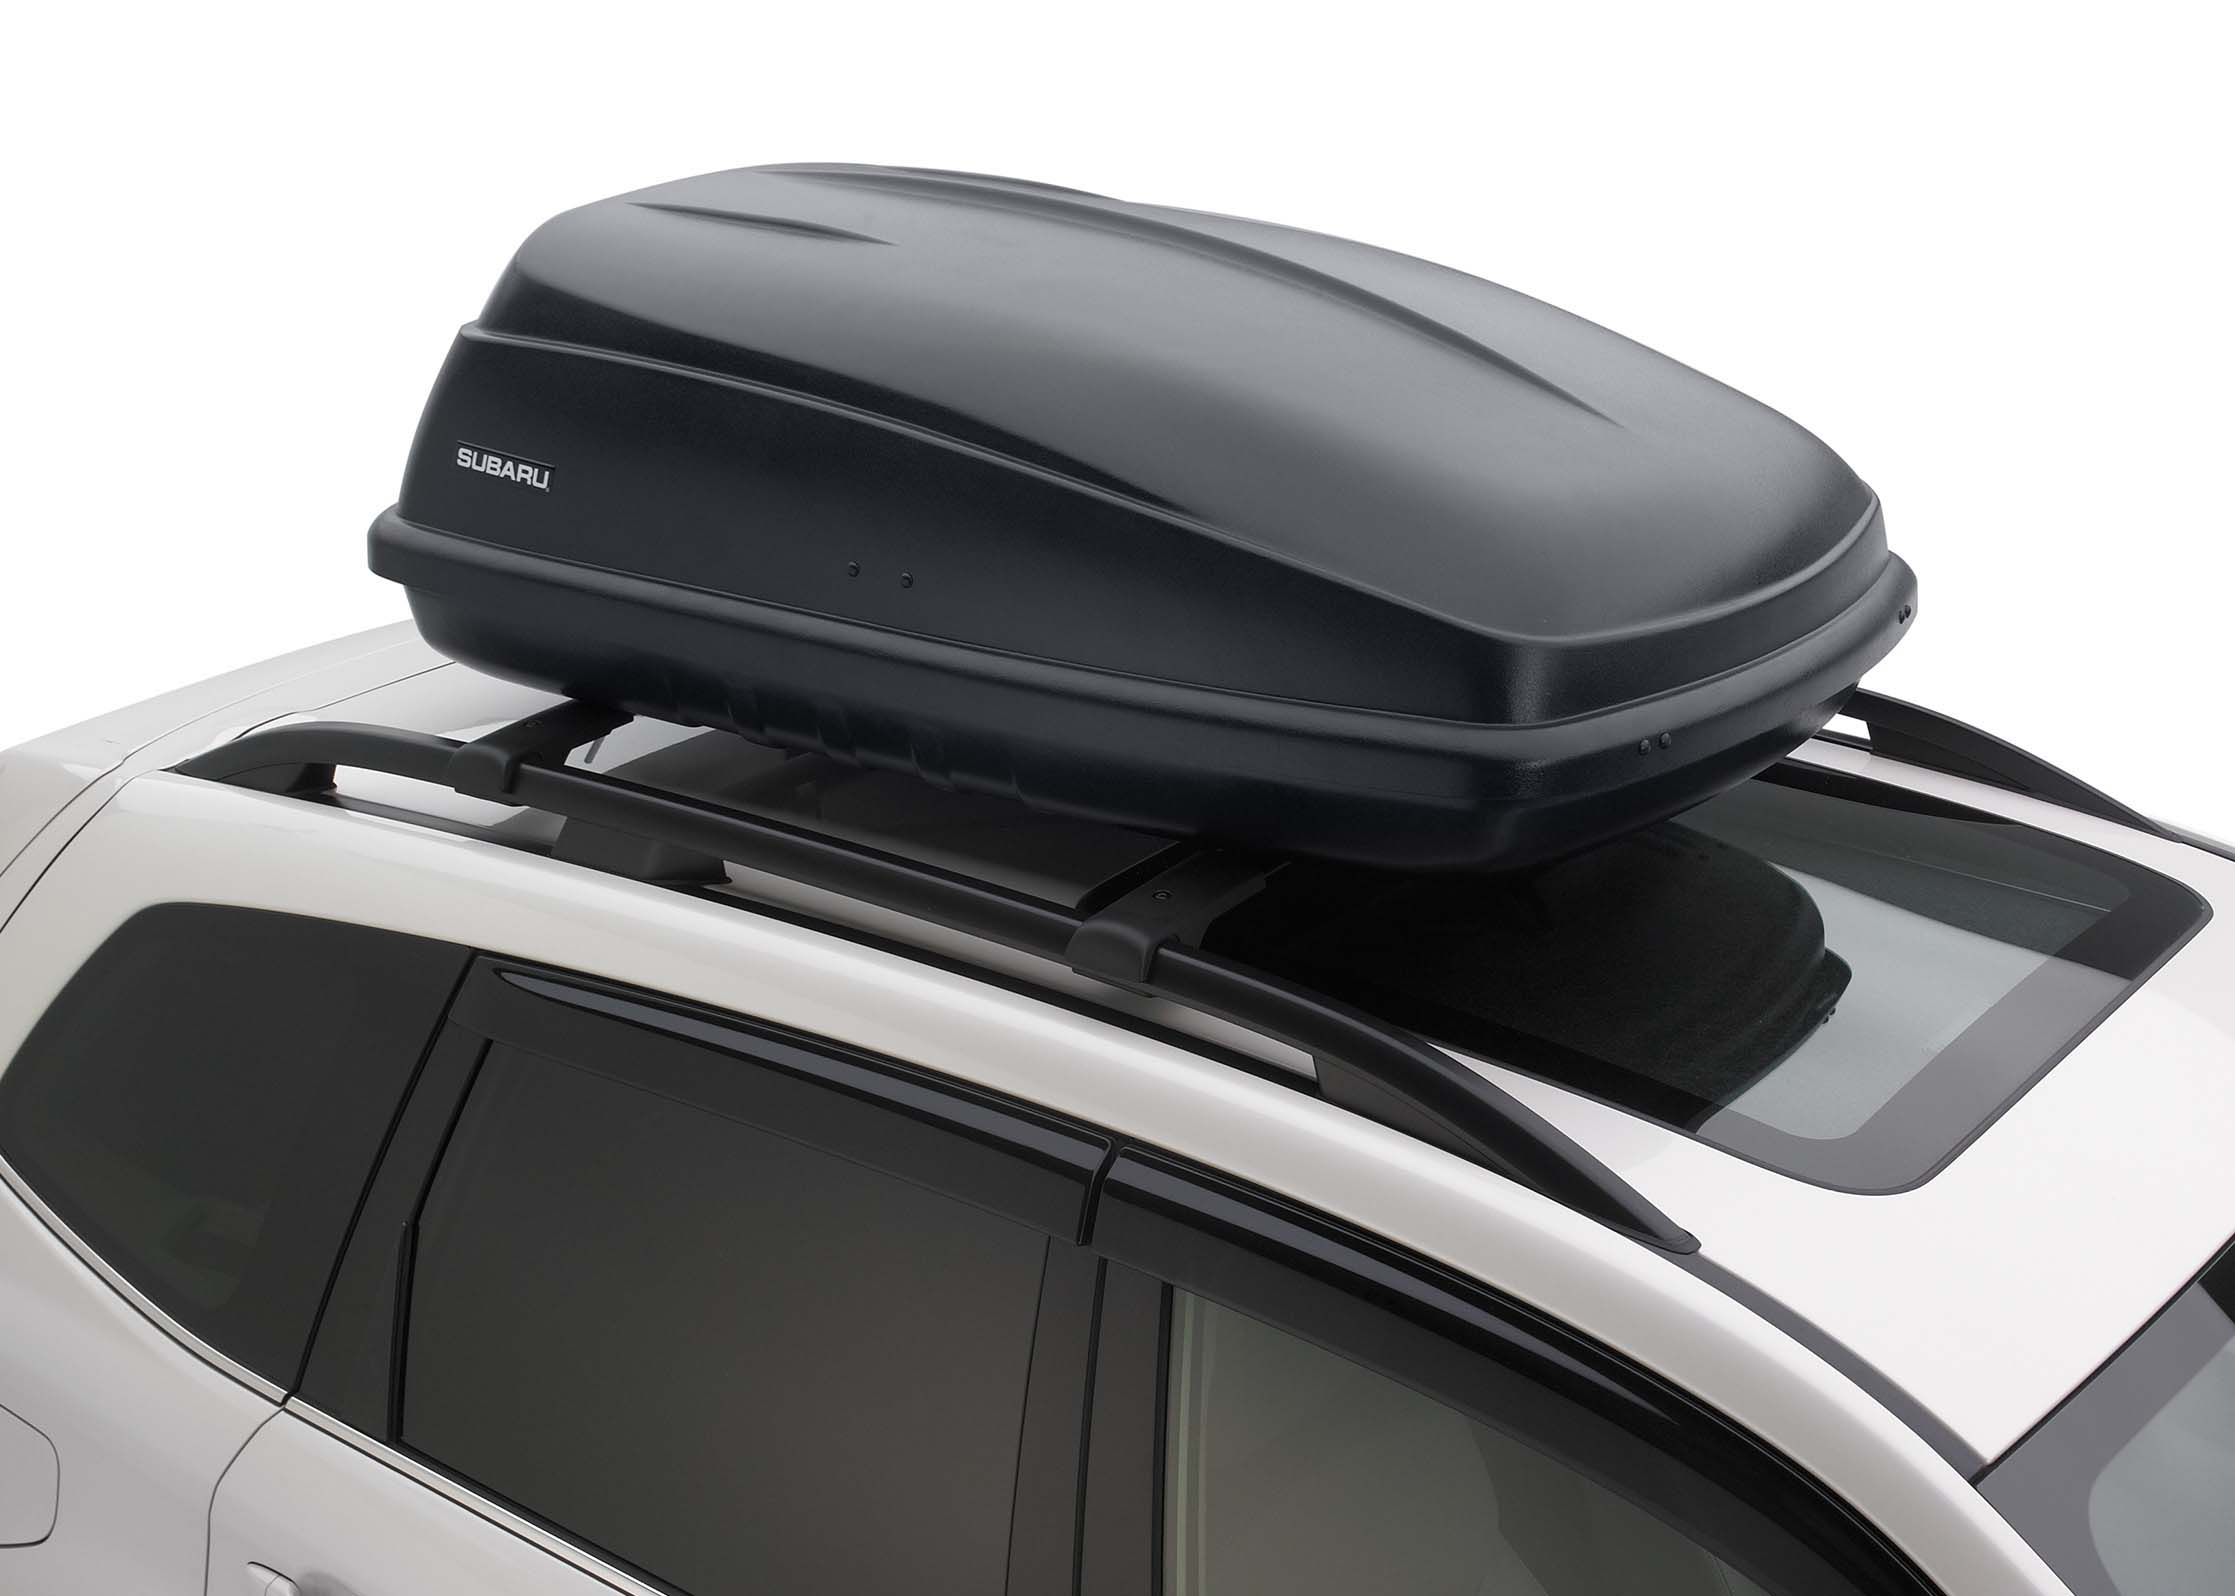 cargo carrier roof subaru thule box ascent impreza outback parts crosstrek accessories fits suburban forester 2006 number accessory side provides